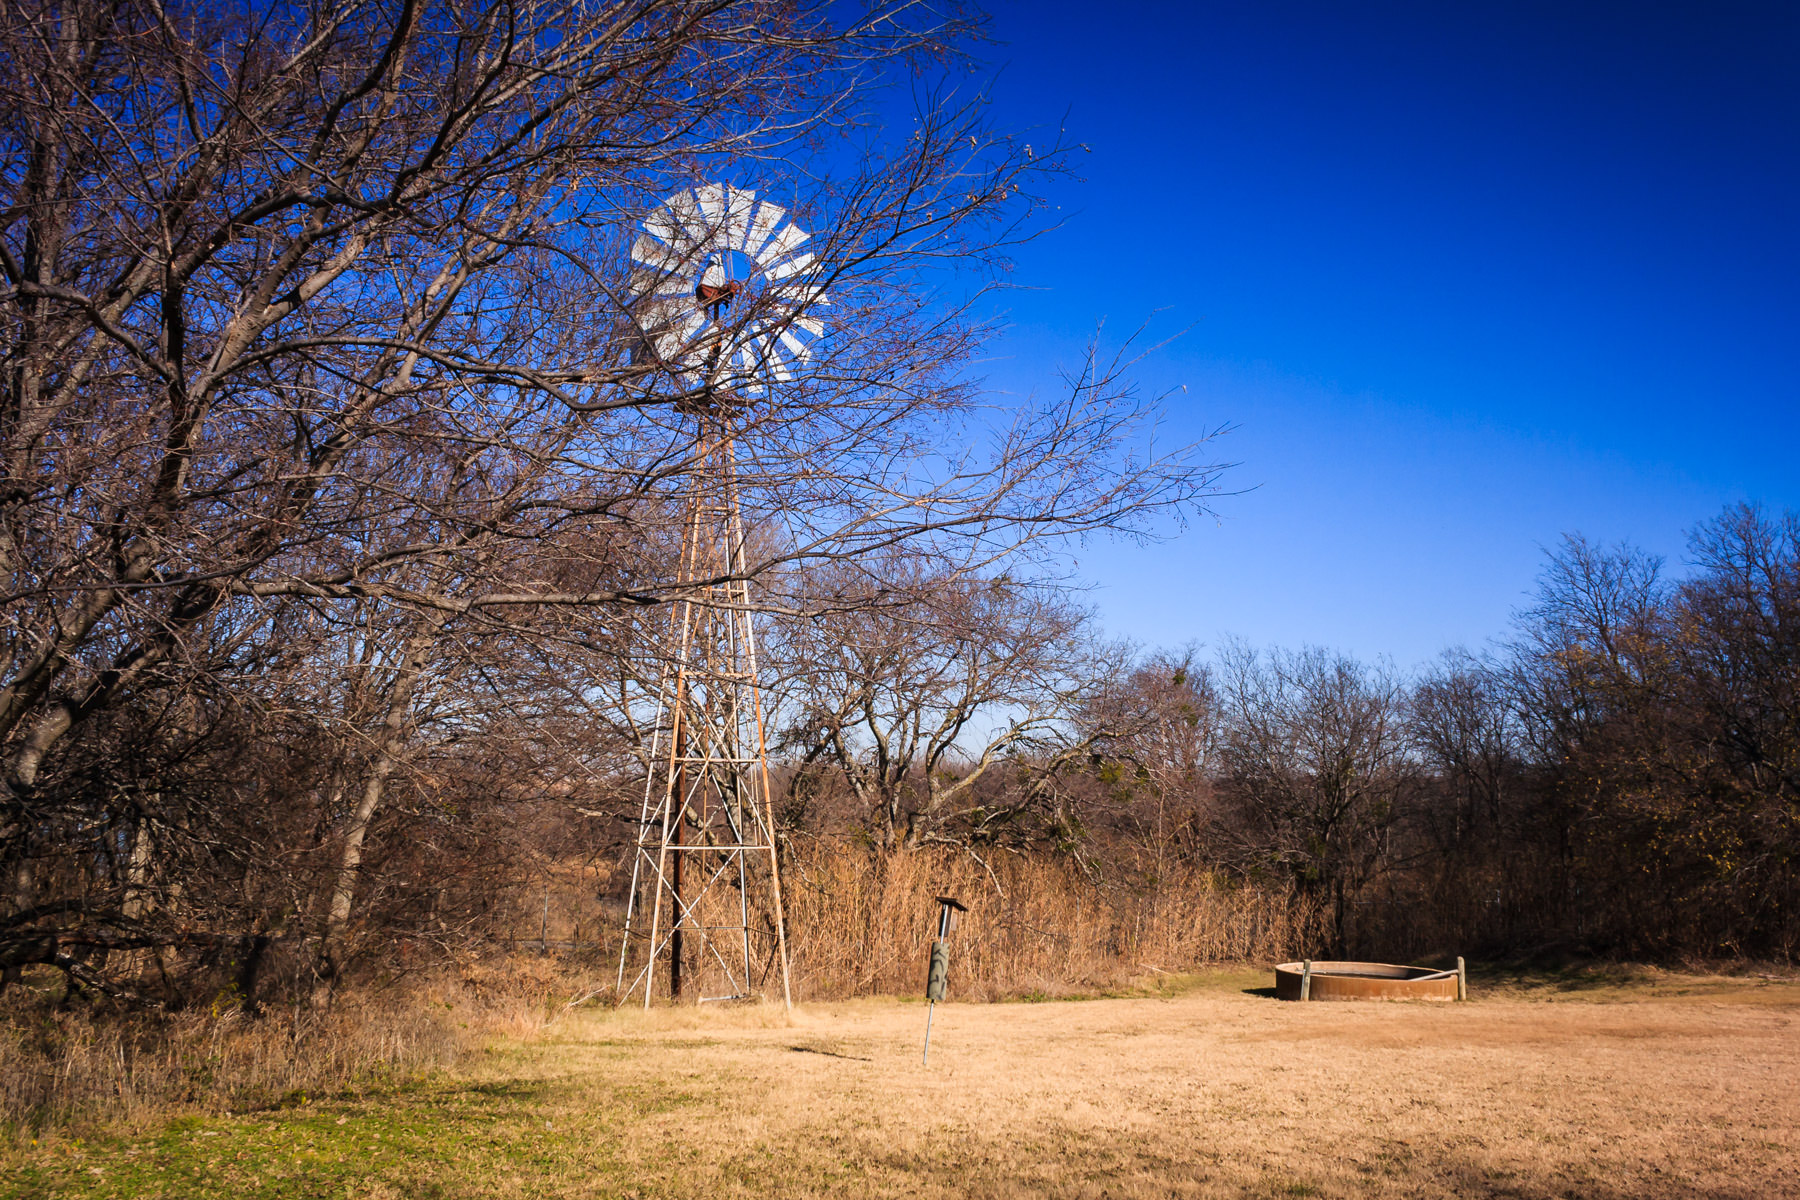 One of the windmills at Penn Farm in Cedar Hill State Park, Texas.